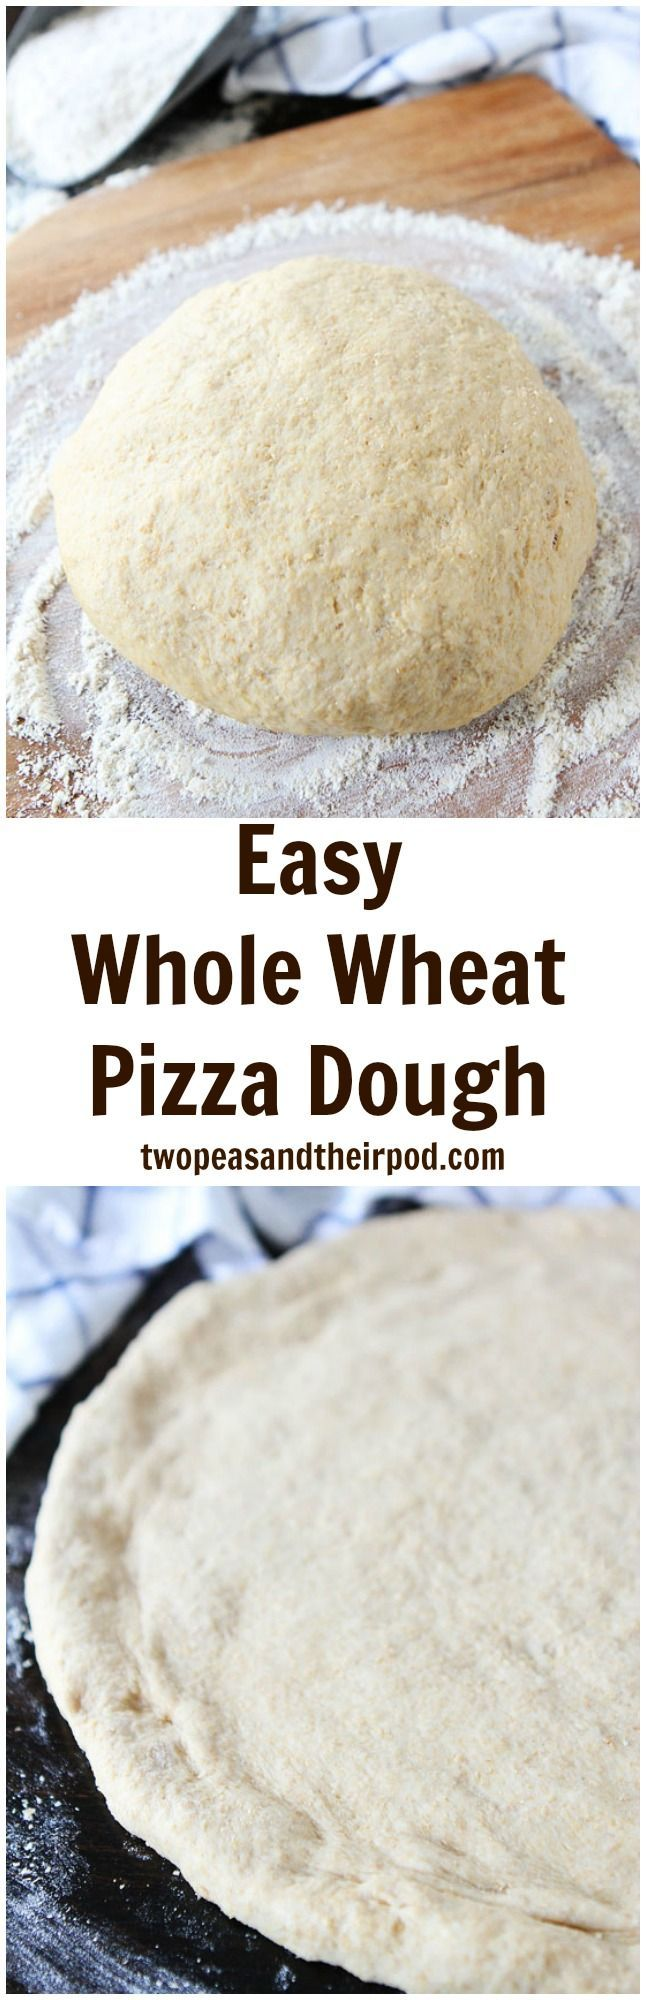 Easy Whole Wheat Pizza Dough Recipe on http://twopeasandtheirpod.com This is our favorite pizza dough recipe and it's so easy to make. Top with your favorite pizza toppings!